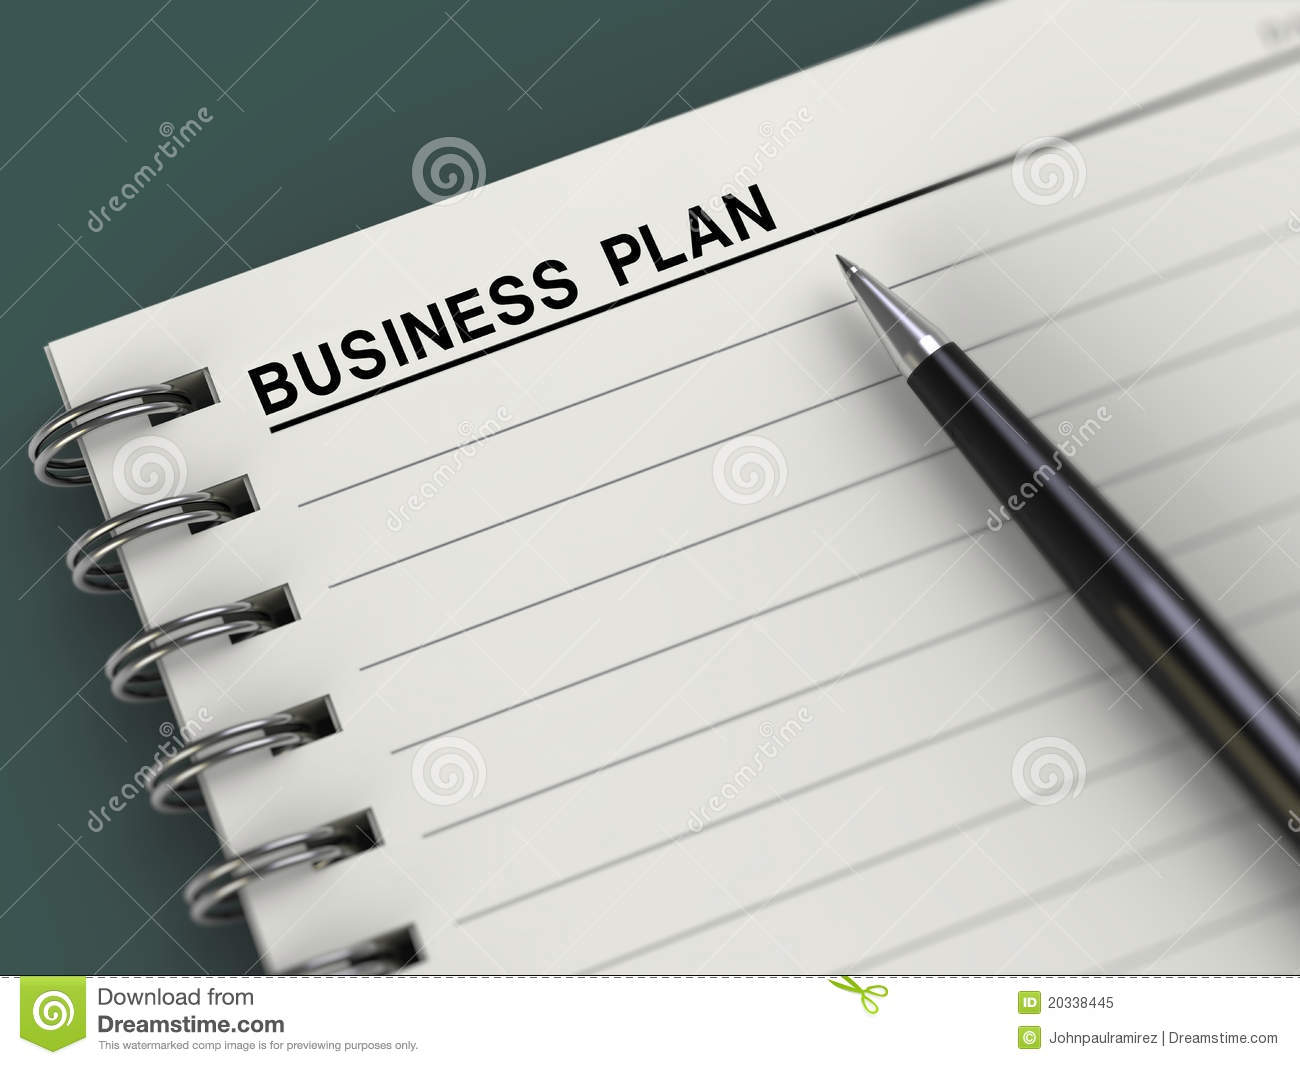 business plan title notebook planner pen royalty free